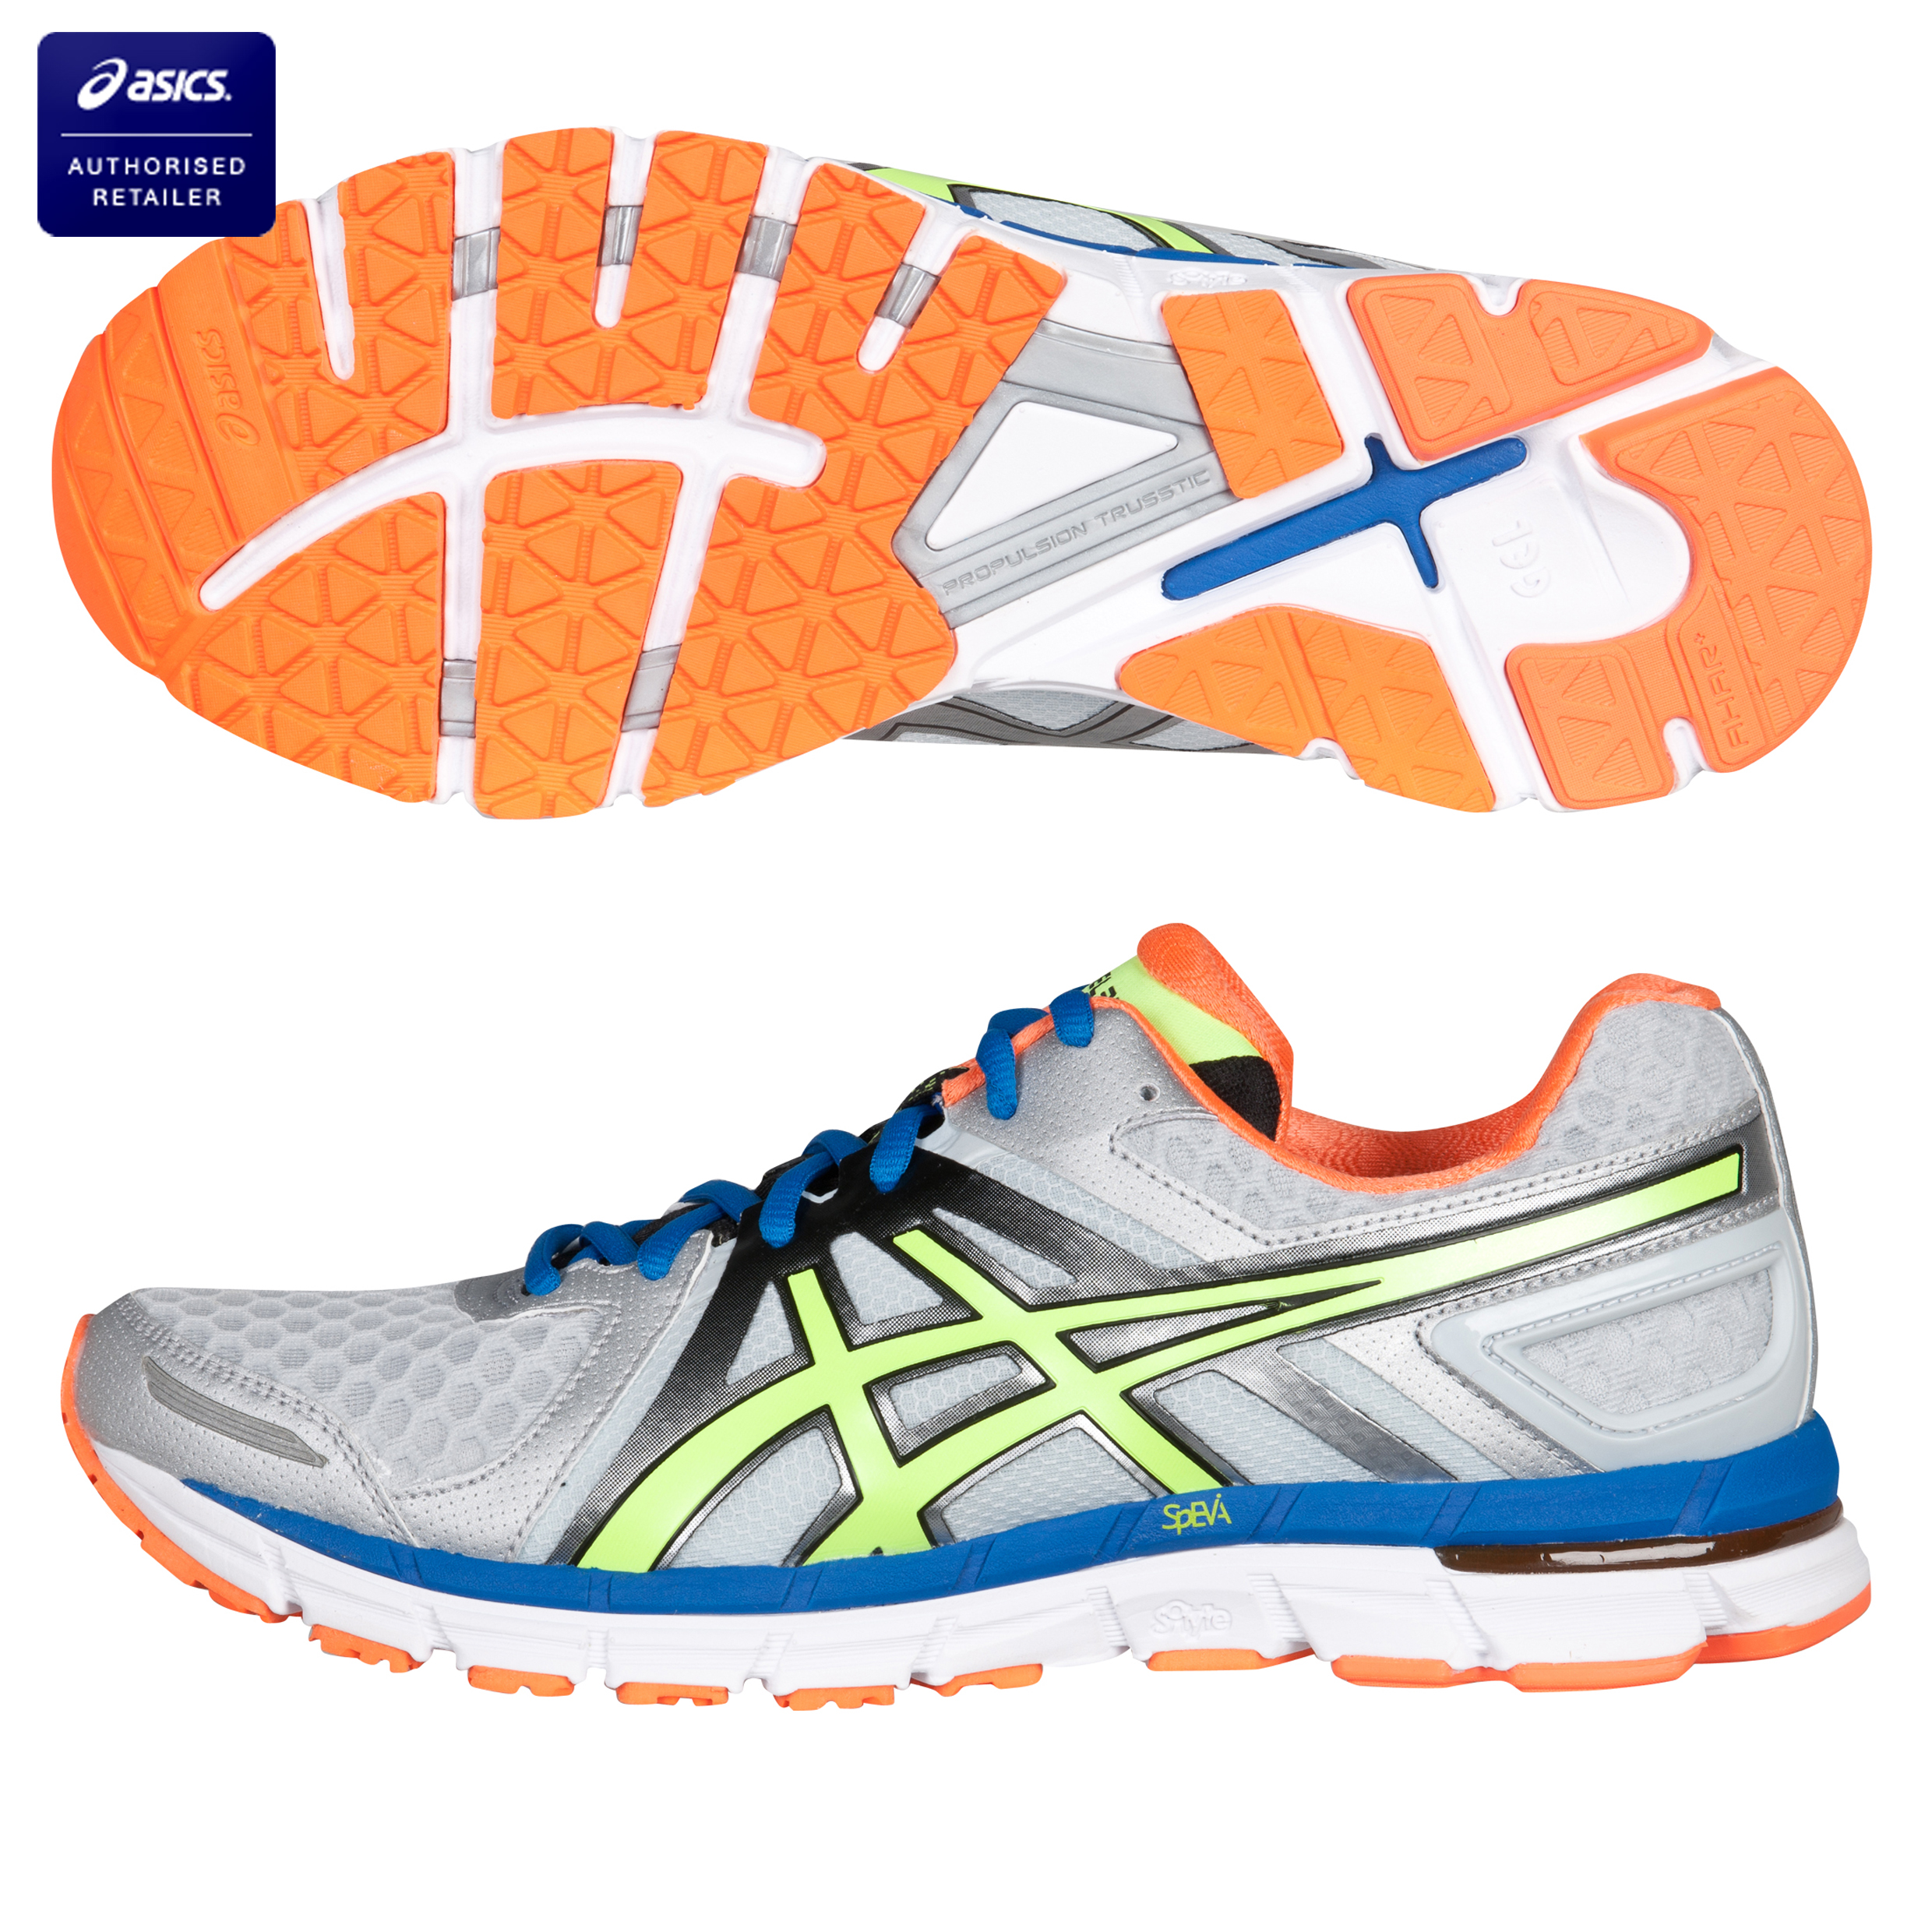 Asics Gel-Excel 33 2 Natural Running Trainers - Silver/Neon Yellow/Neon Orange